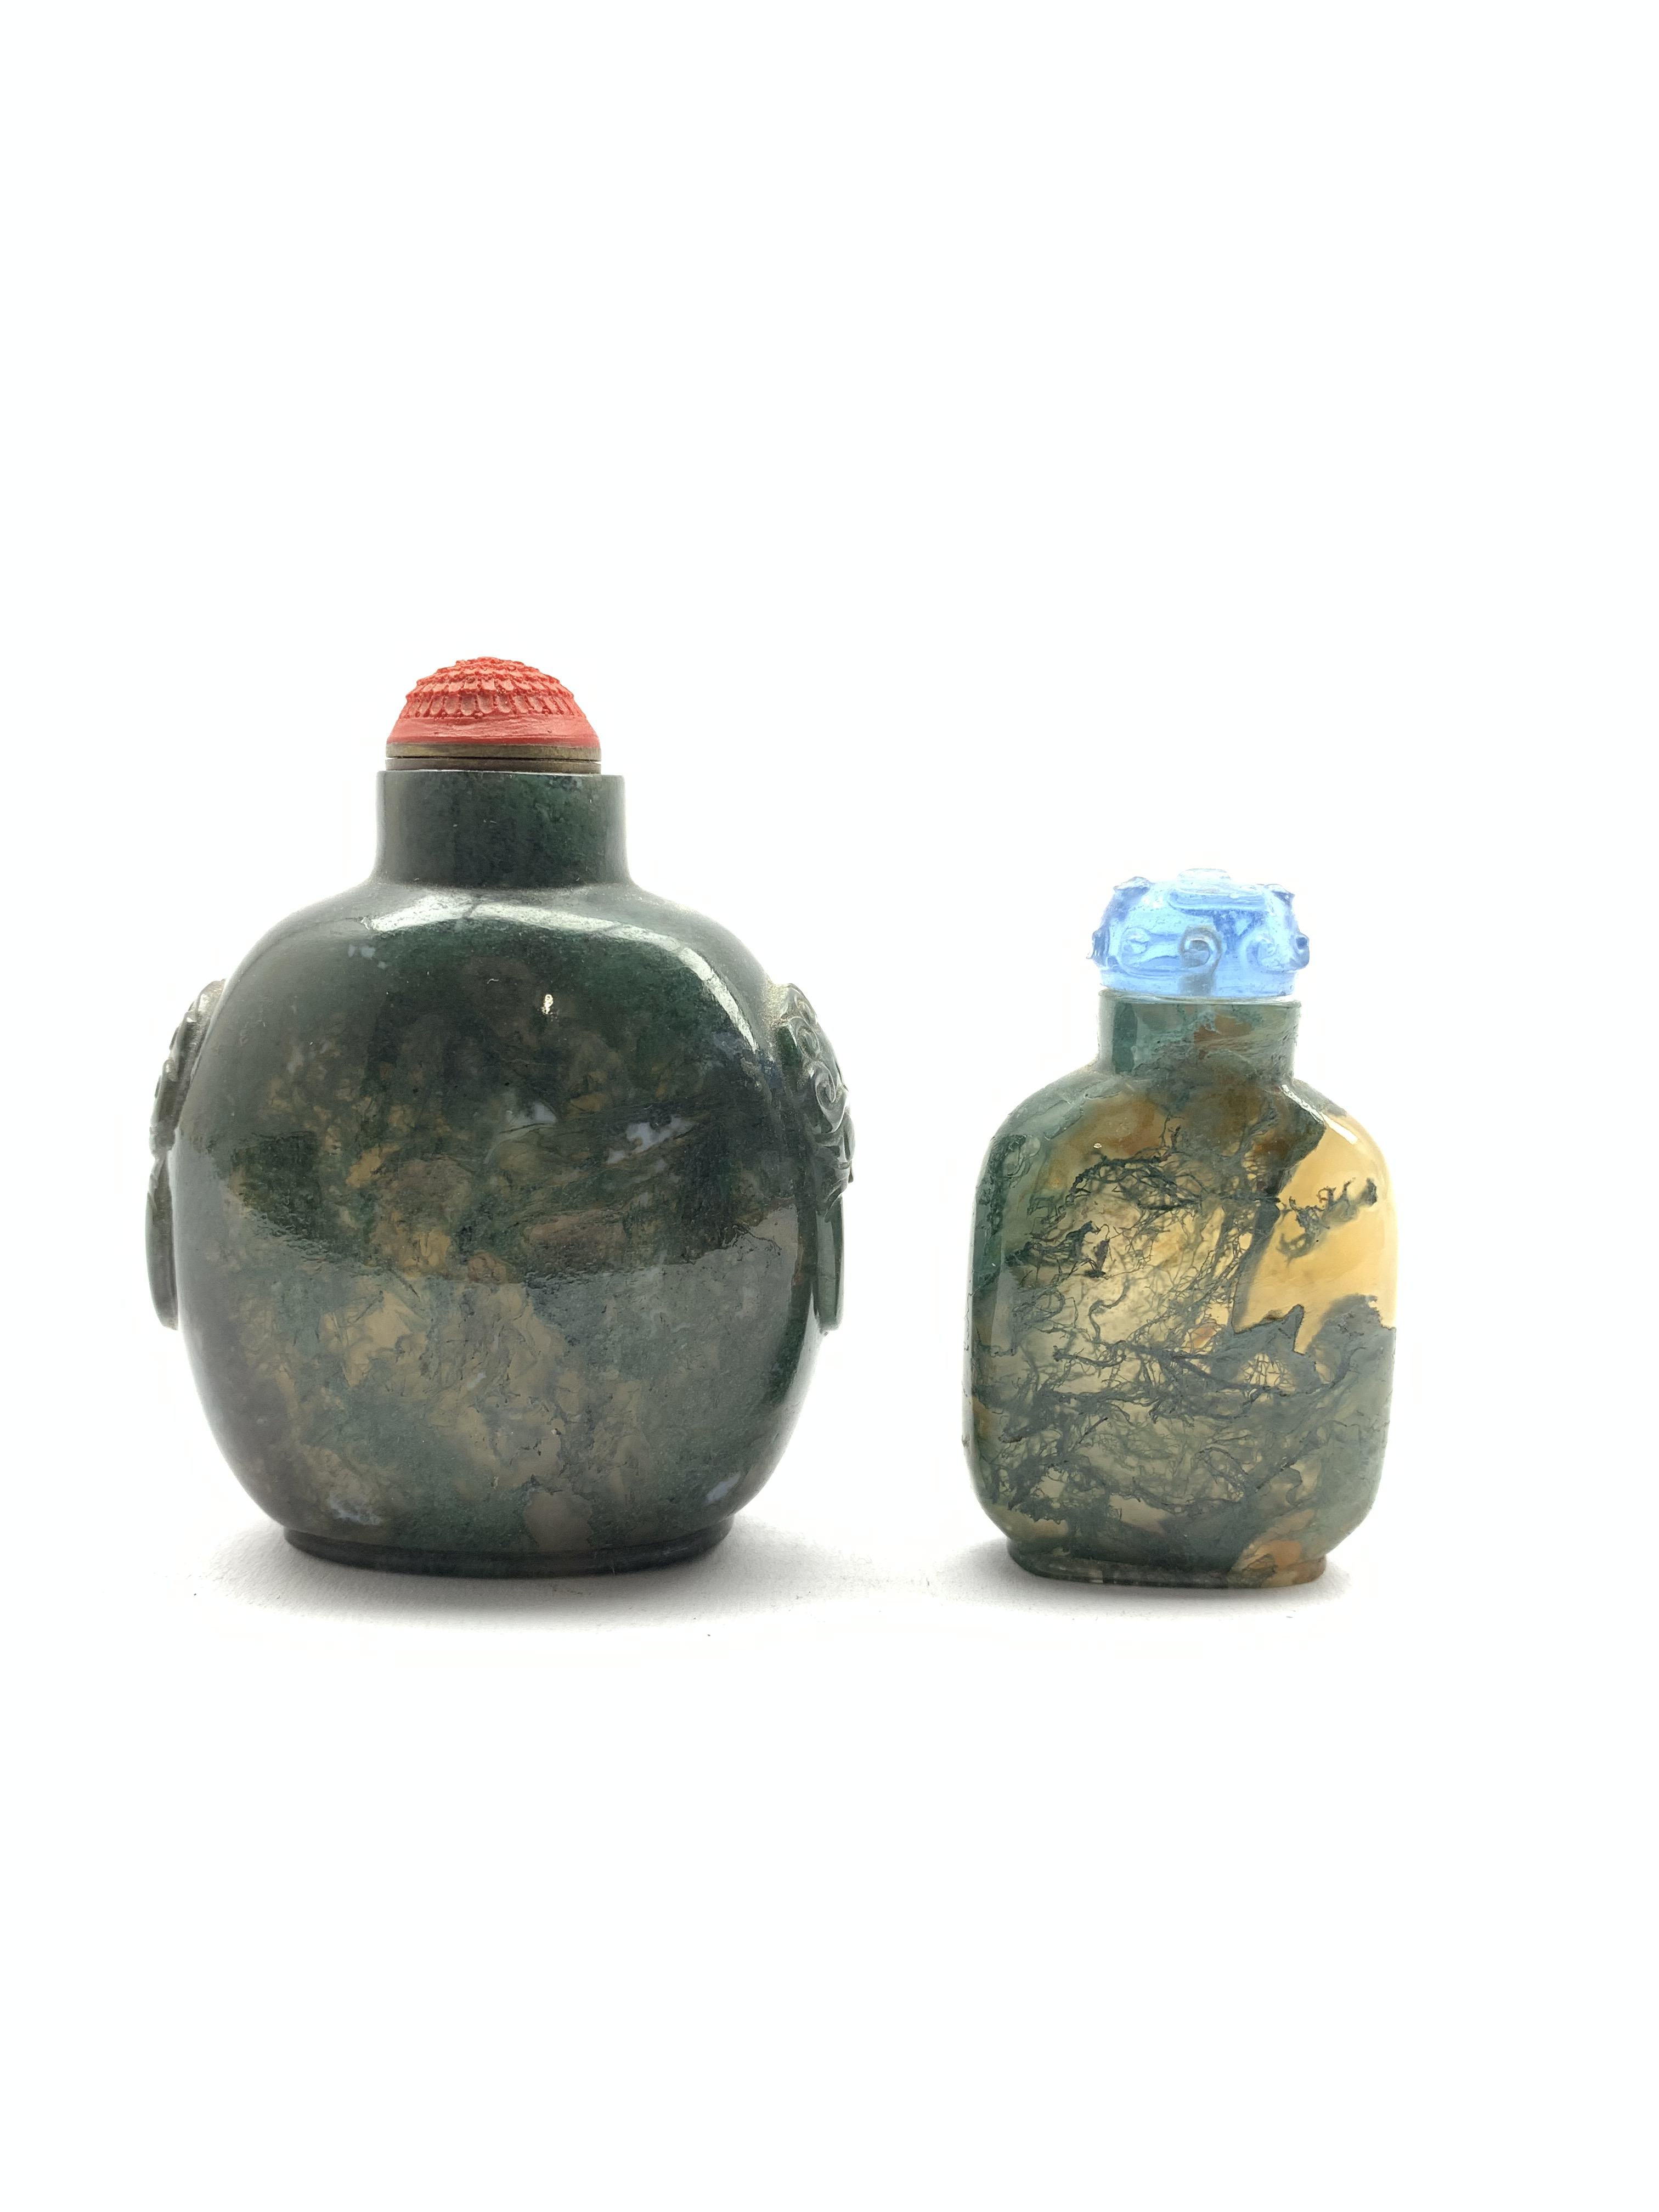 Chinese moss agate style snuff bottle with ring handles and cinnabar stopper, H8cm together with a s - Image 6 of 7